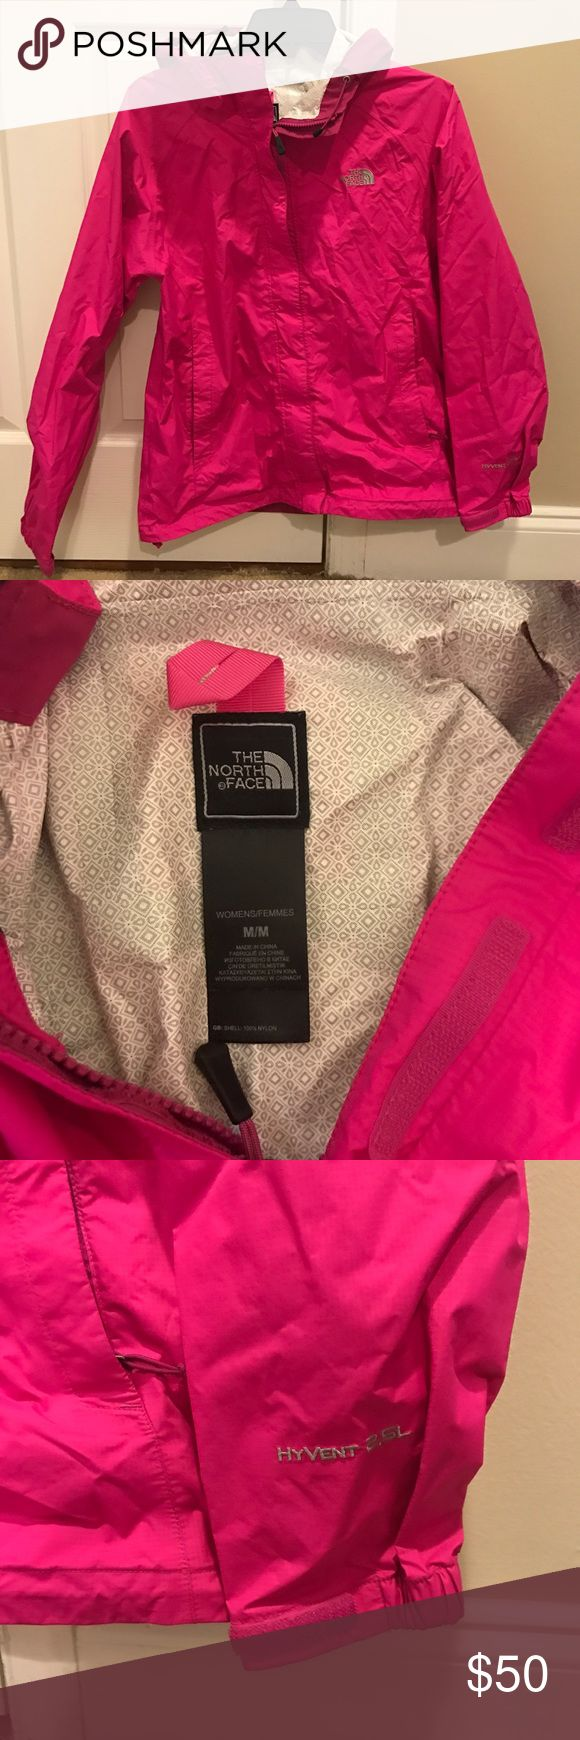 """North Face Hyvent 2.5L Women's Rain Jacket Only worn once, in great condition!  This jacket is ultralight and weatherproof... grey for extra weather protection from storms.  Relaxed fit and adjustable hood leave room for extra layers.  100% windproof fabric.  Covered, secure-zip hand pockets.  Center back: 27"""".  Color: pink The North Face Jackets & Coats"""